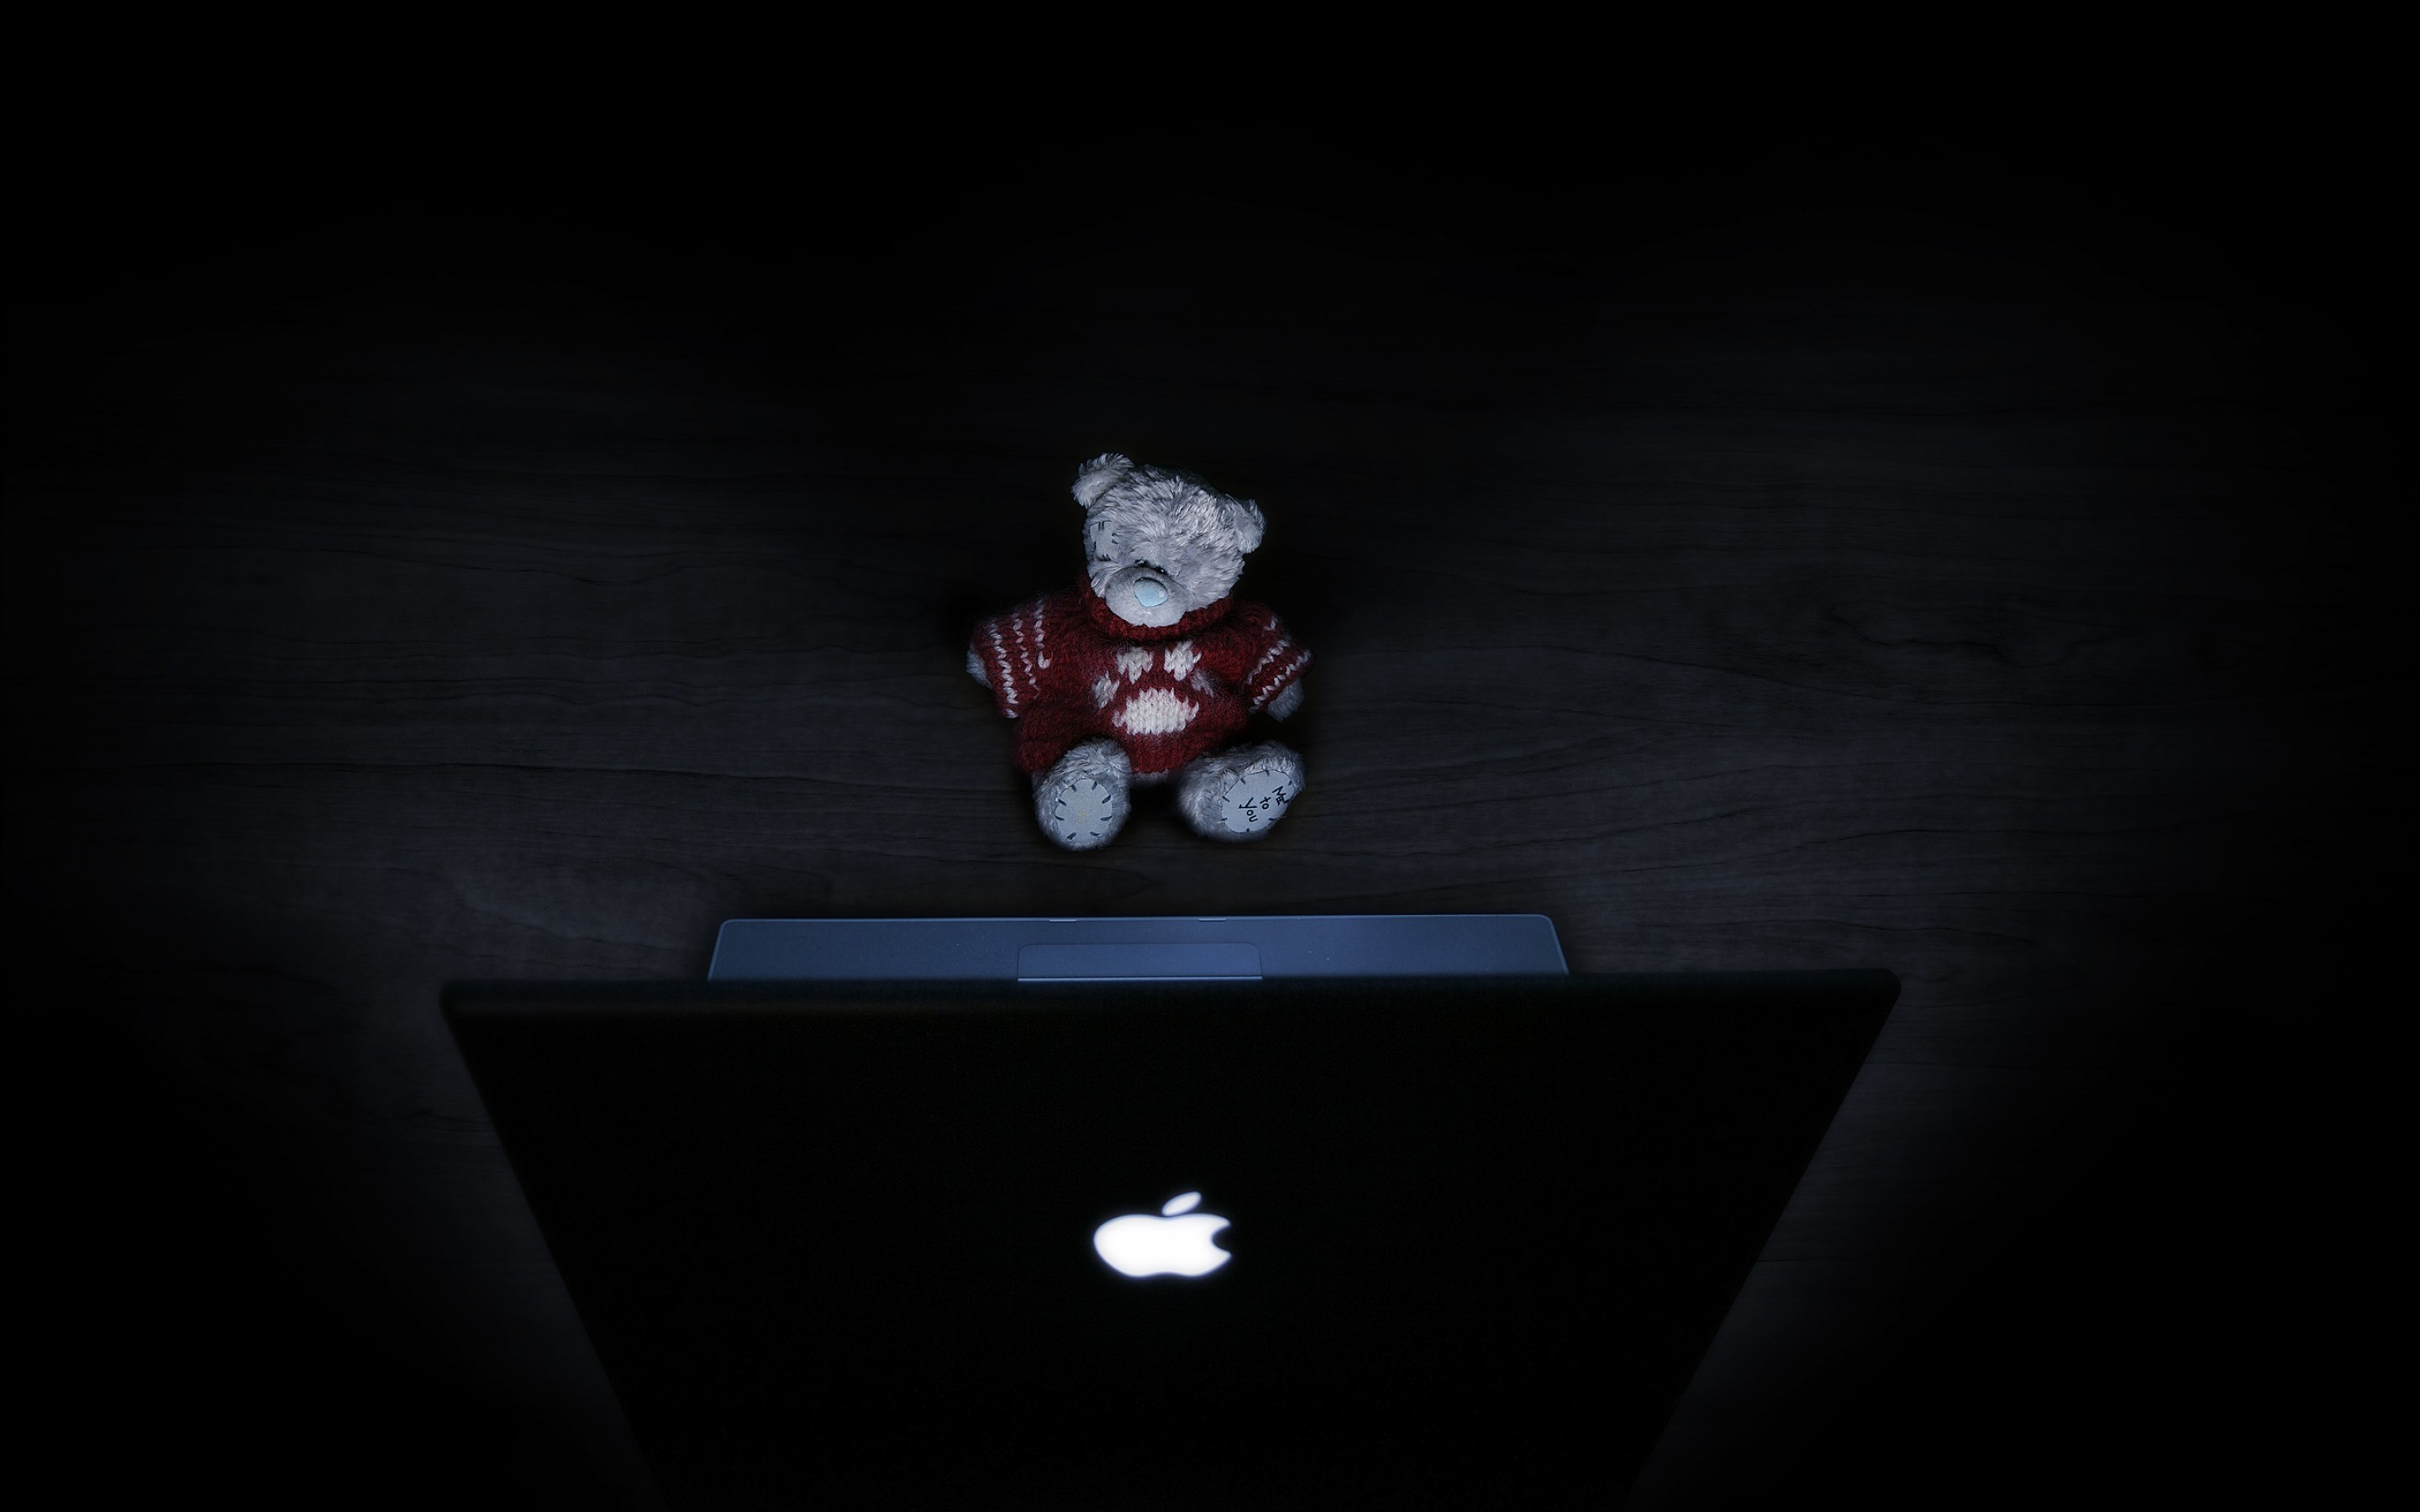 2880x1800 Teddybear Mac Mac wallpaper